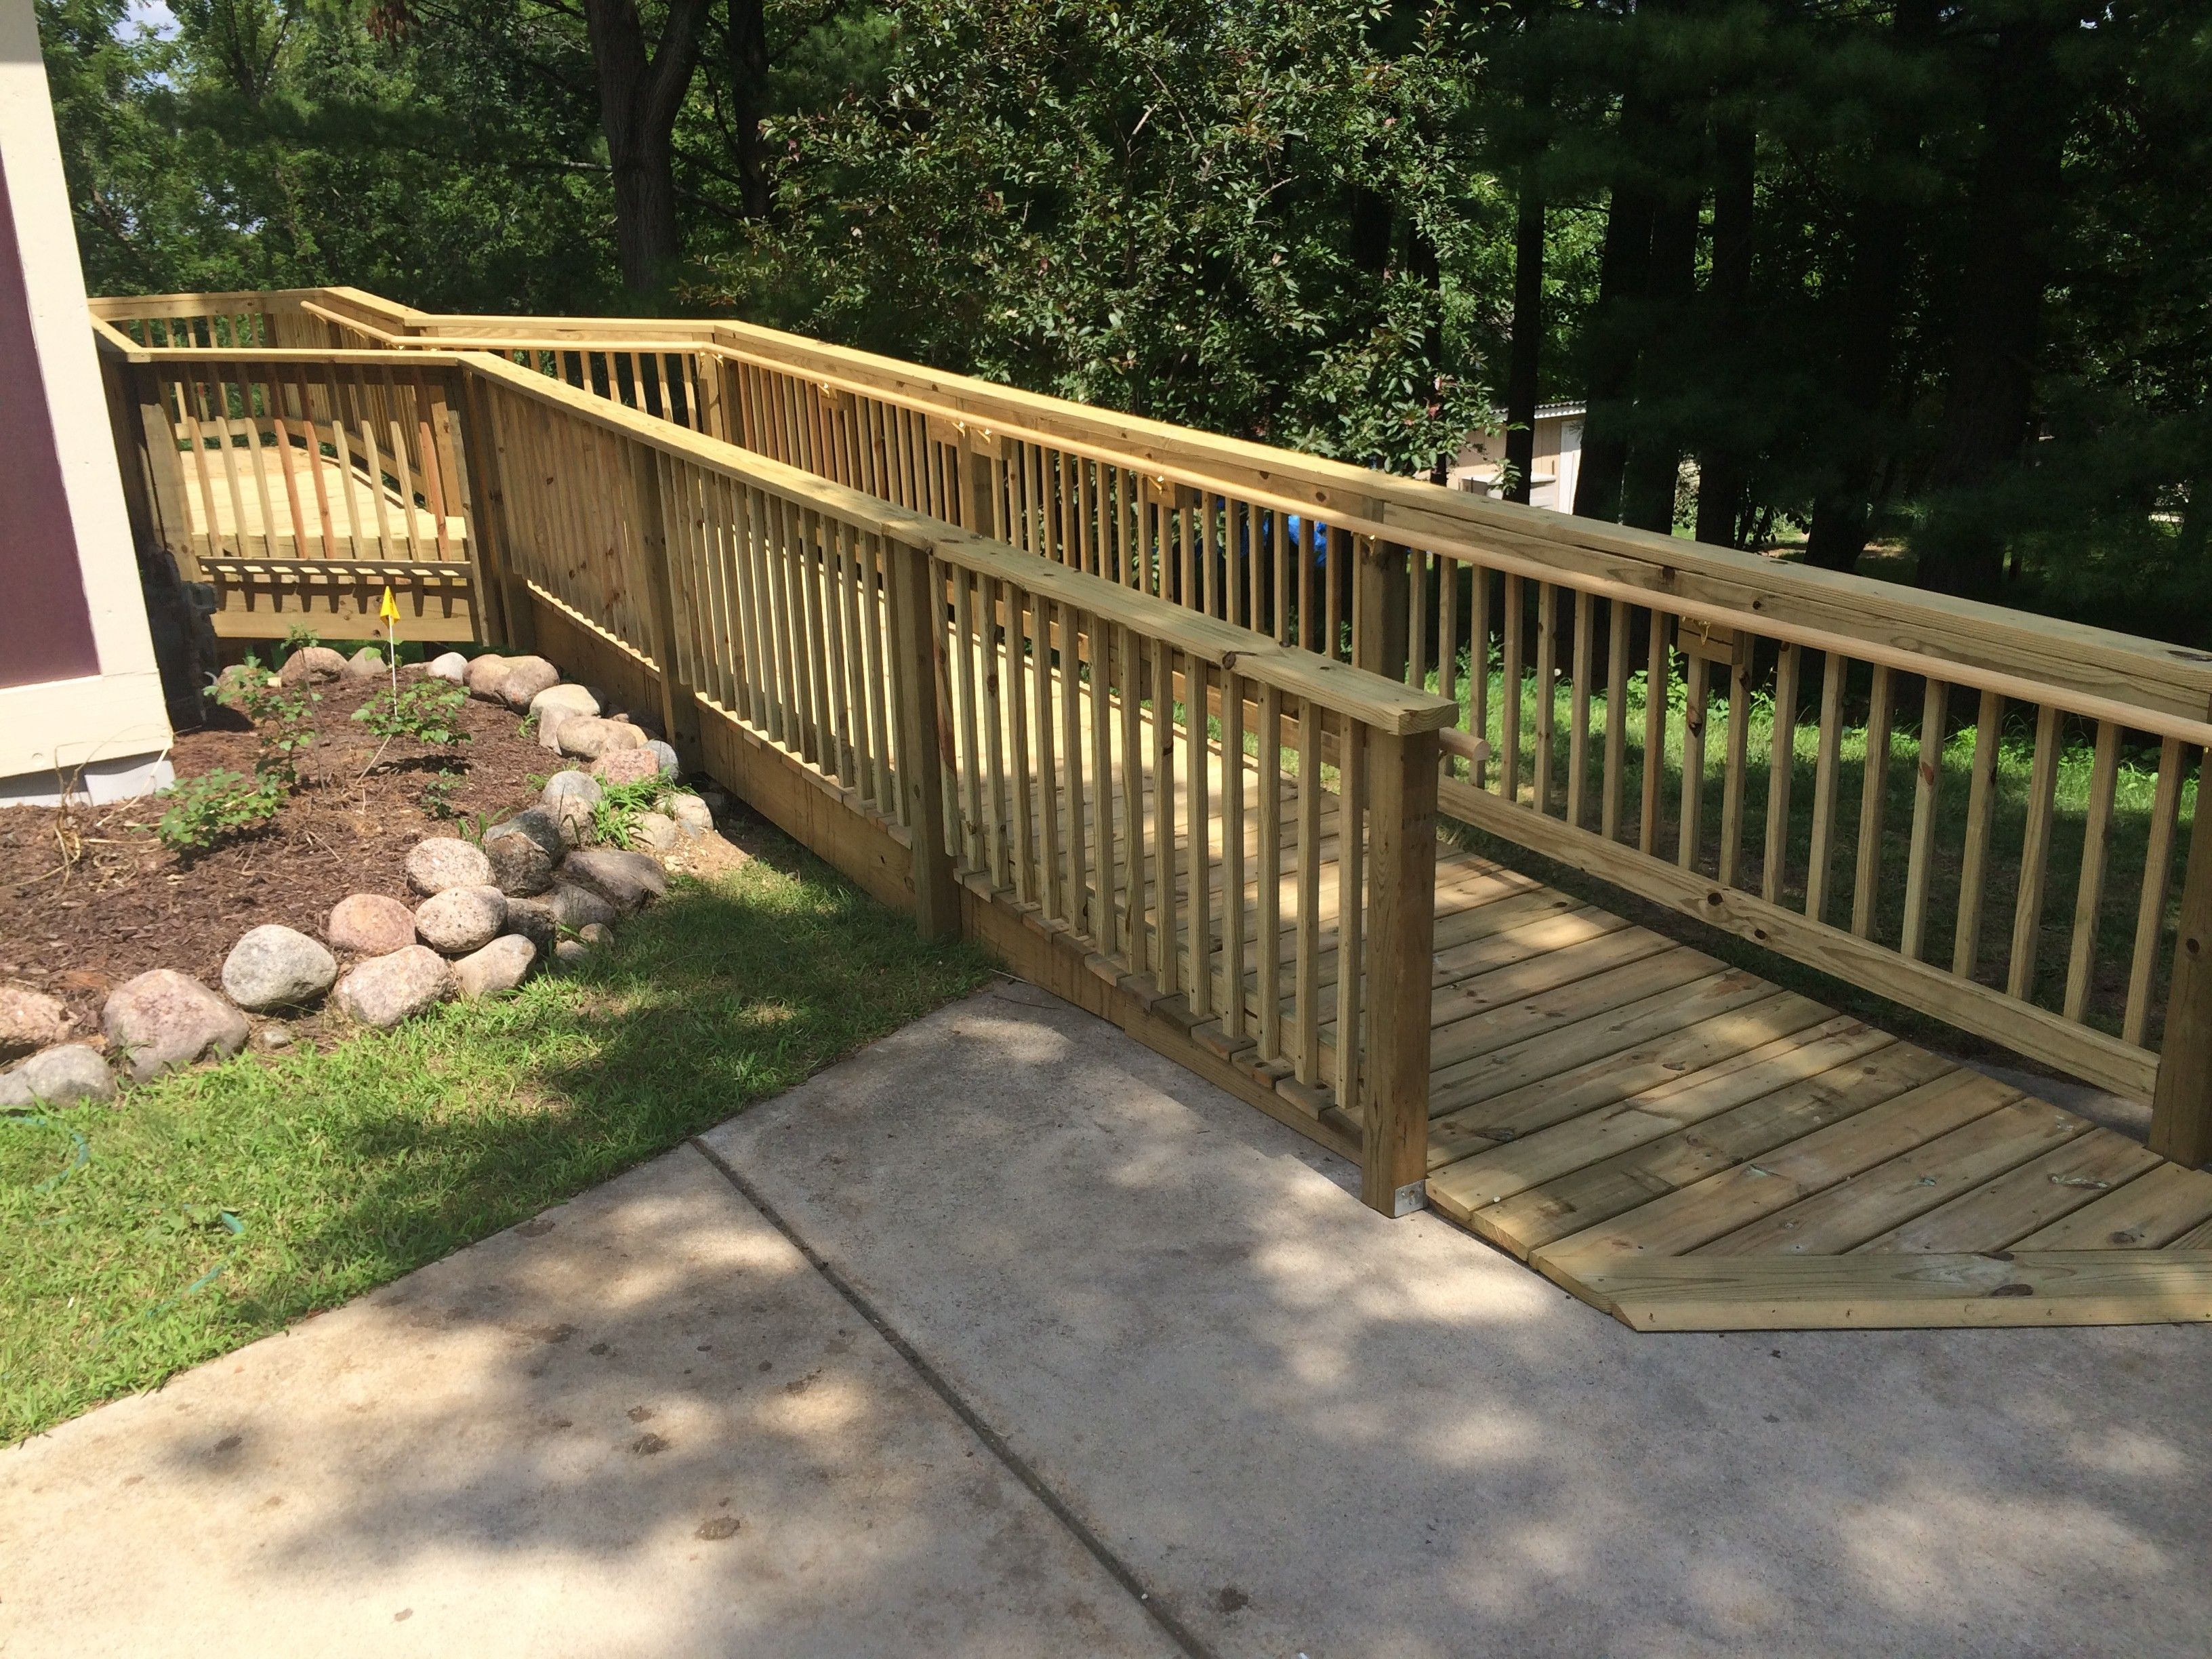 Looking For Wooden Wheelchair Ramps? Patriot Mobility Inc Of West Babylon,  NY Installs Residential And Commercial Wood Ramps.